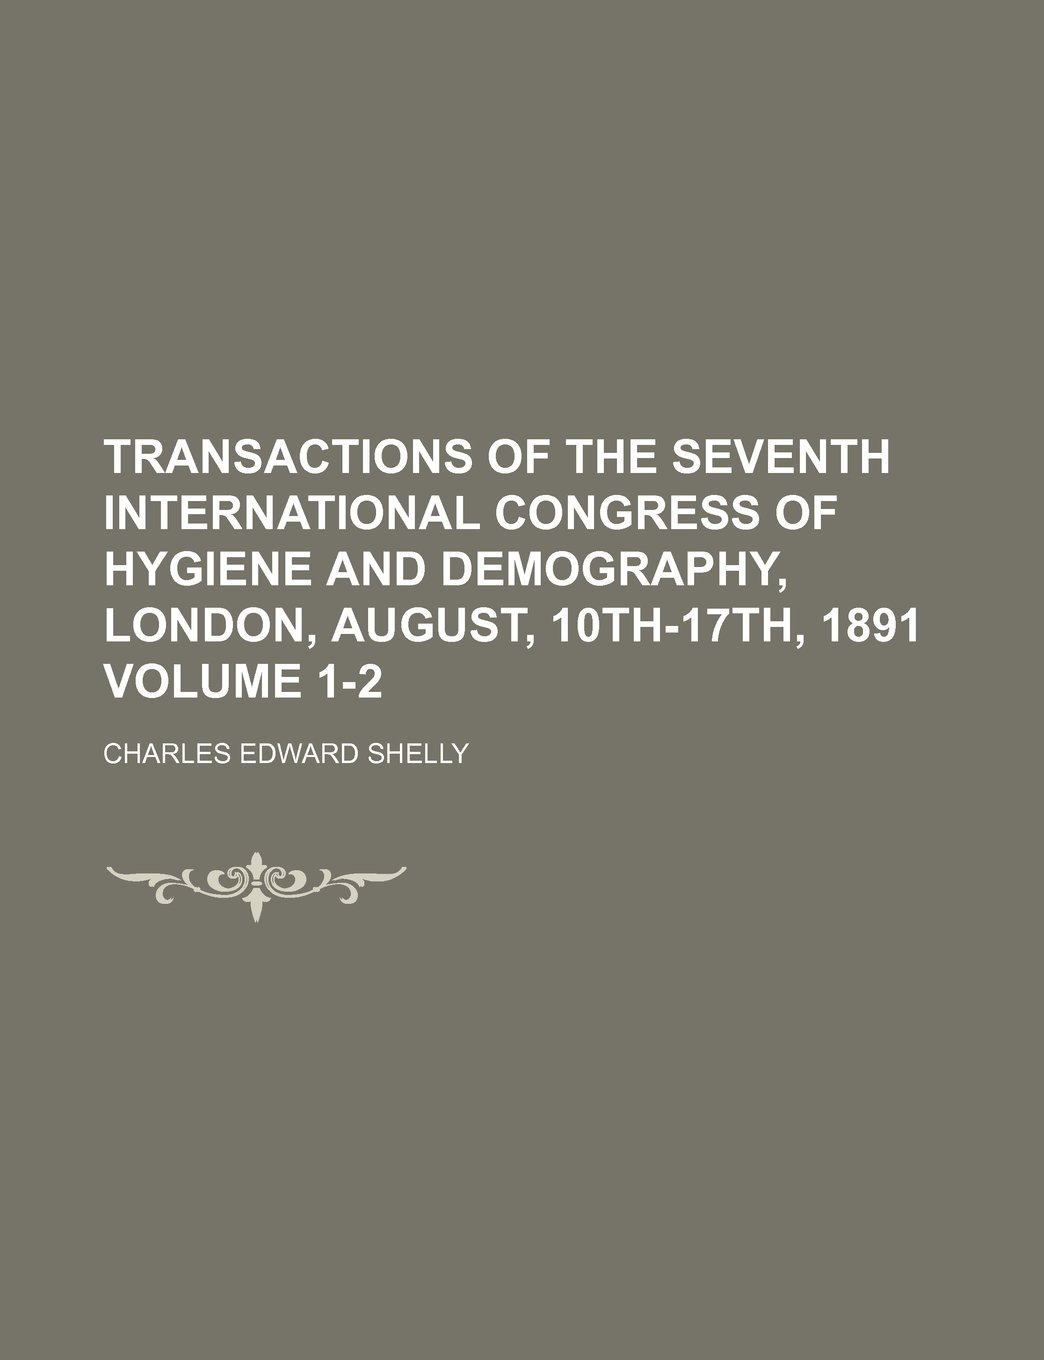 Transactions of the Seventh International Congress of Hygiene and Demography, London, August, 10th-17th, 1891 Volume 1-2 pdf